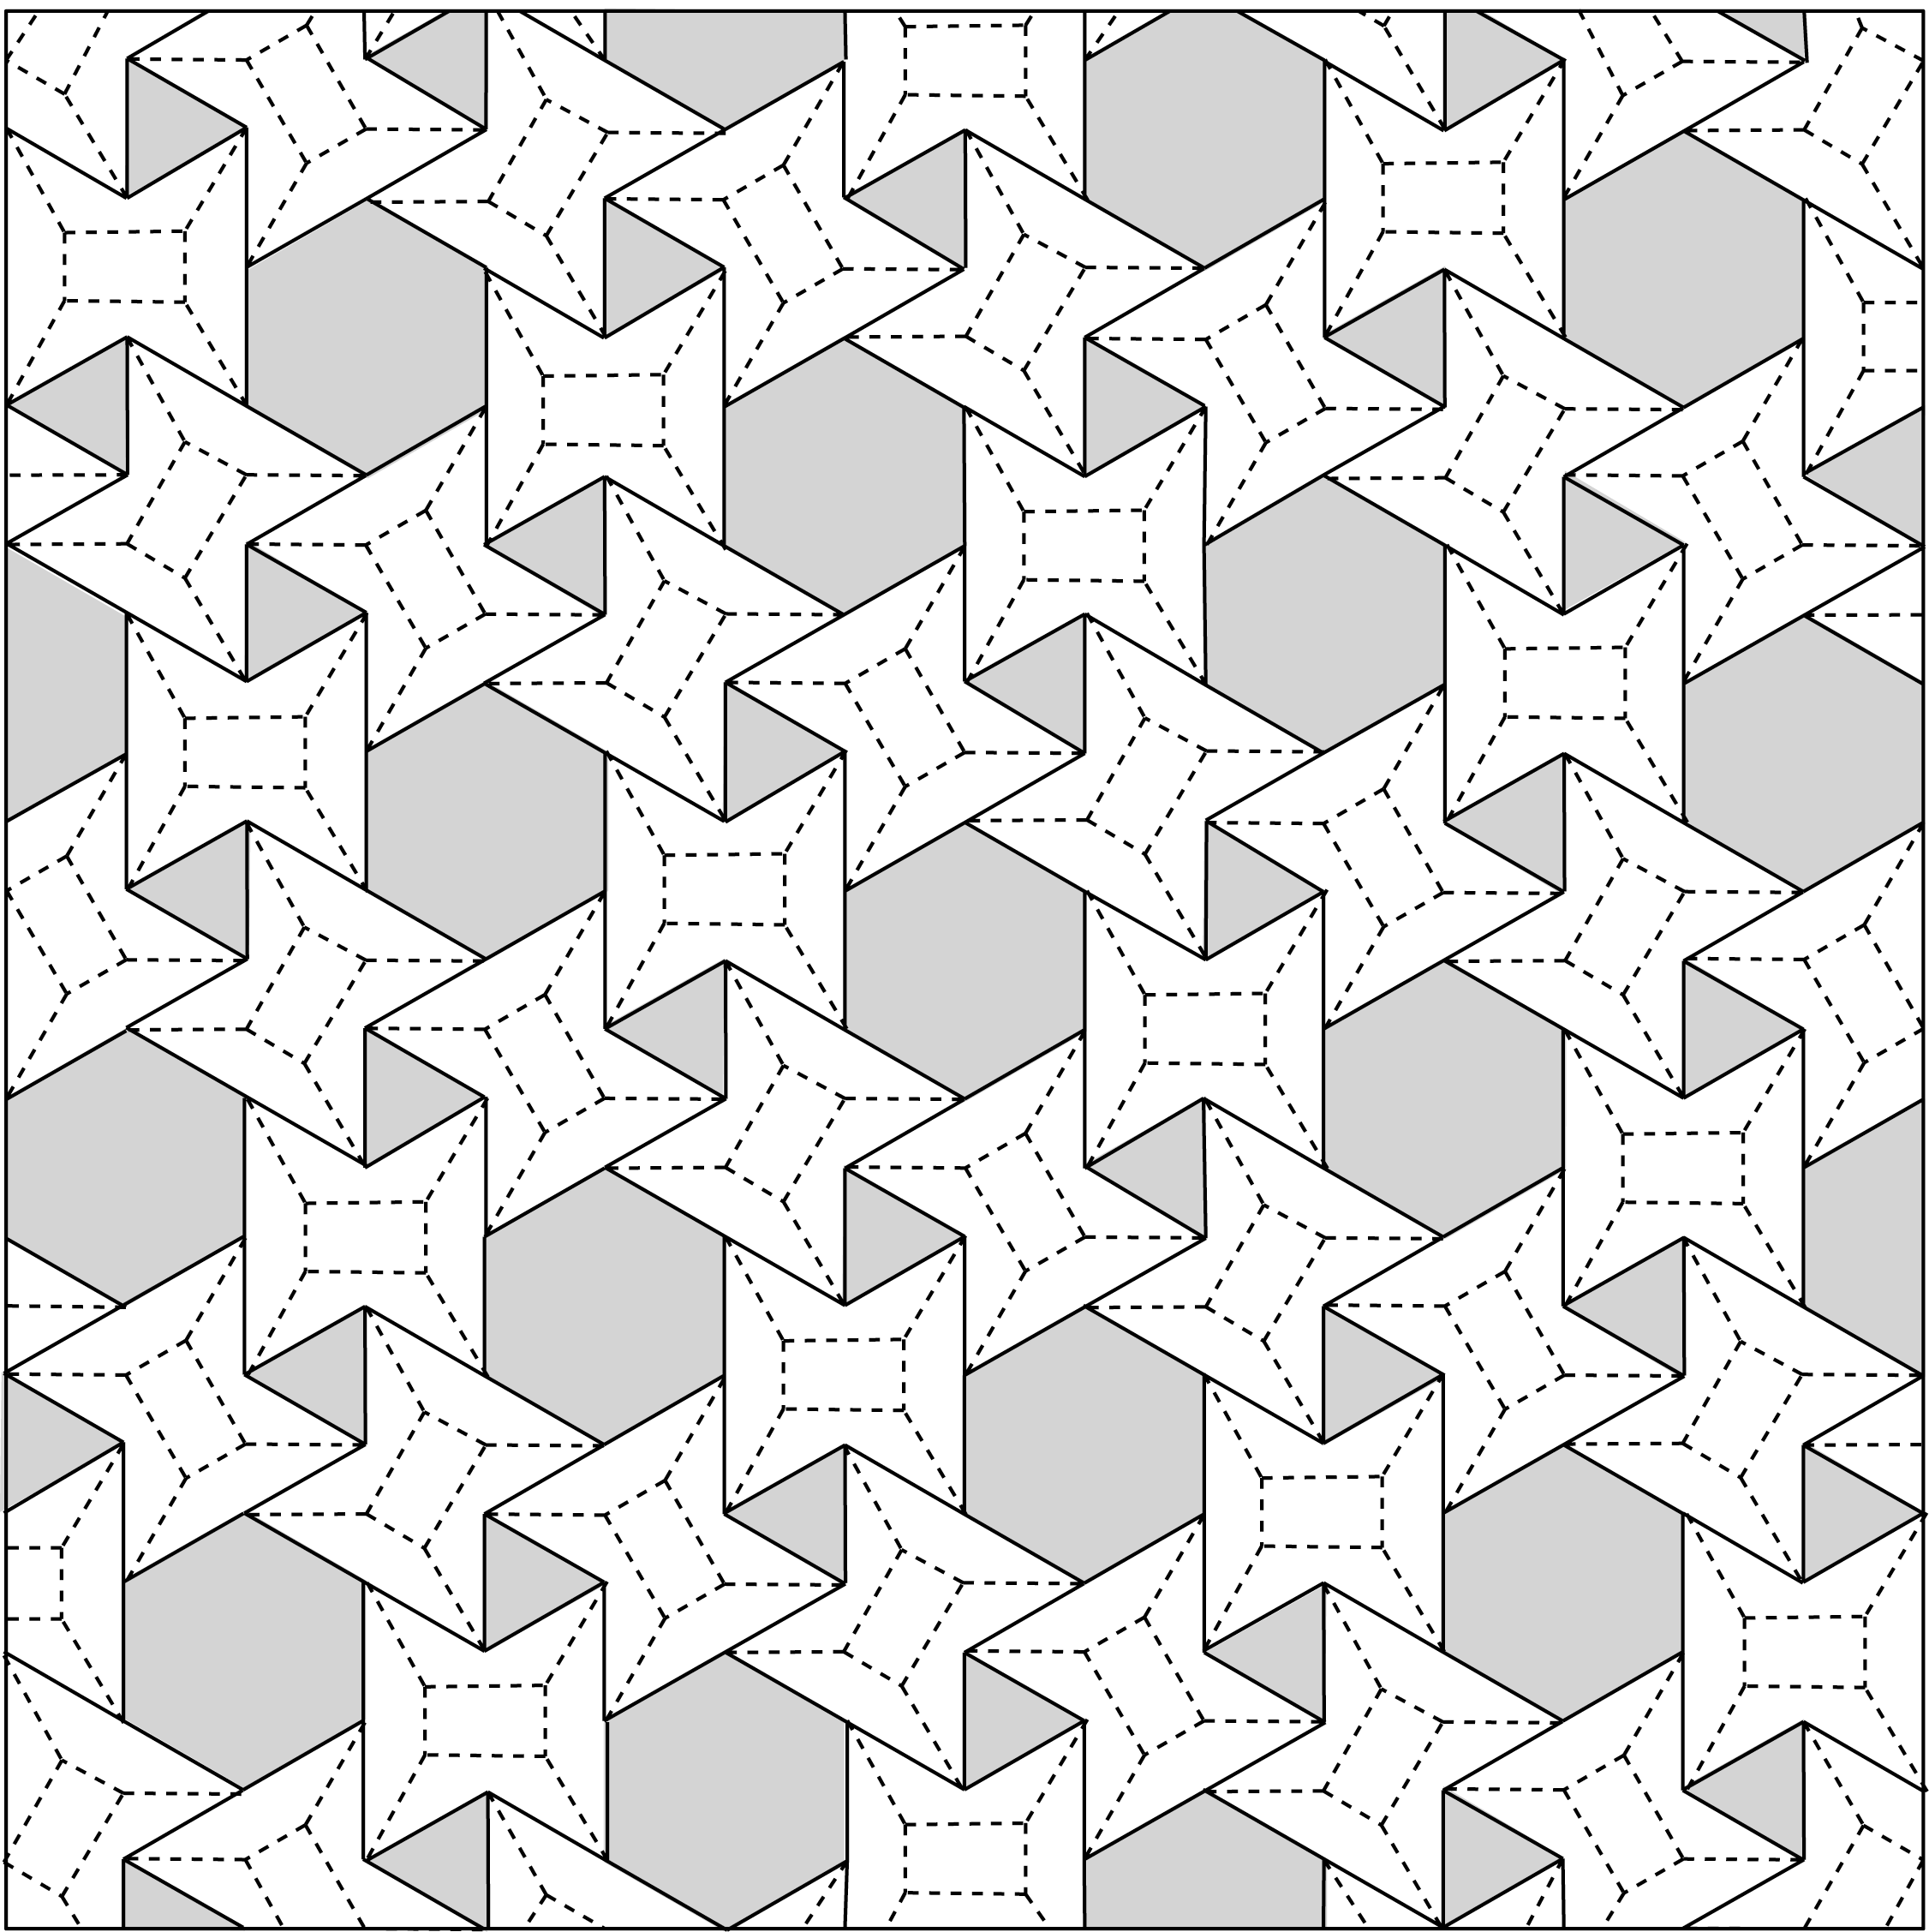 Origami Crease Patterns And Diagrams Guide Troubleshooting Of John Deere Wiring Diagram Download 7520 3 6 Waterbomb Flagstone Tessellation Pattern To Print On Paper